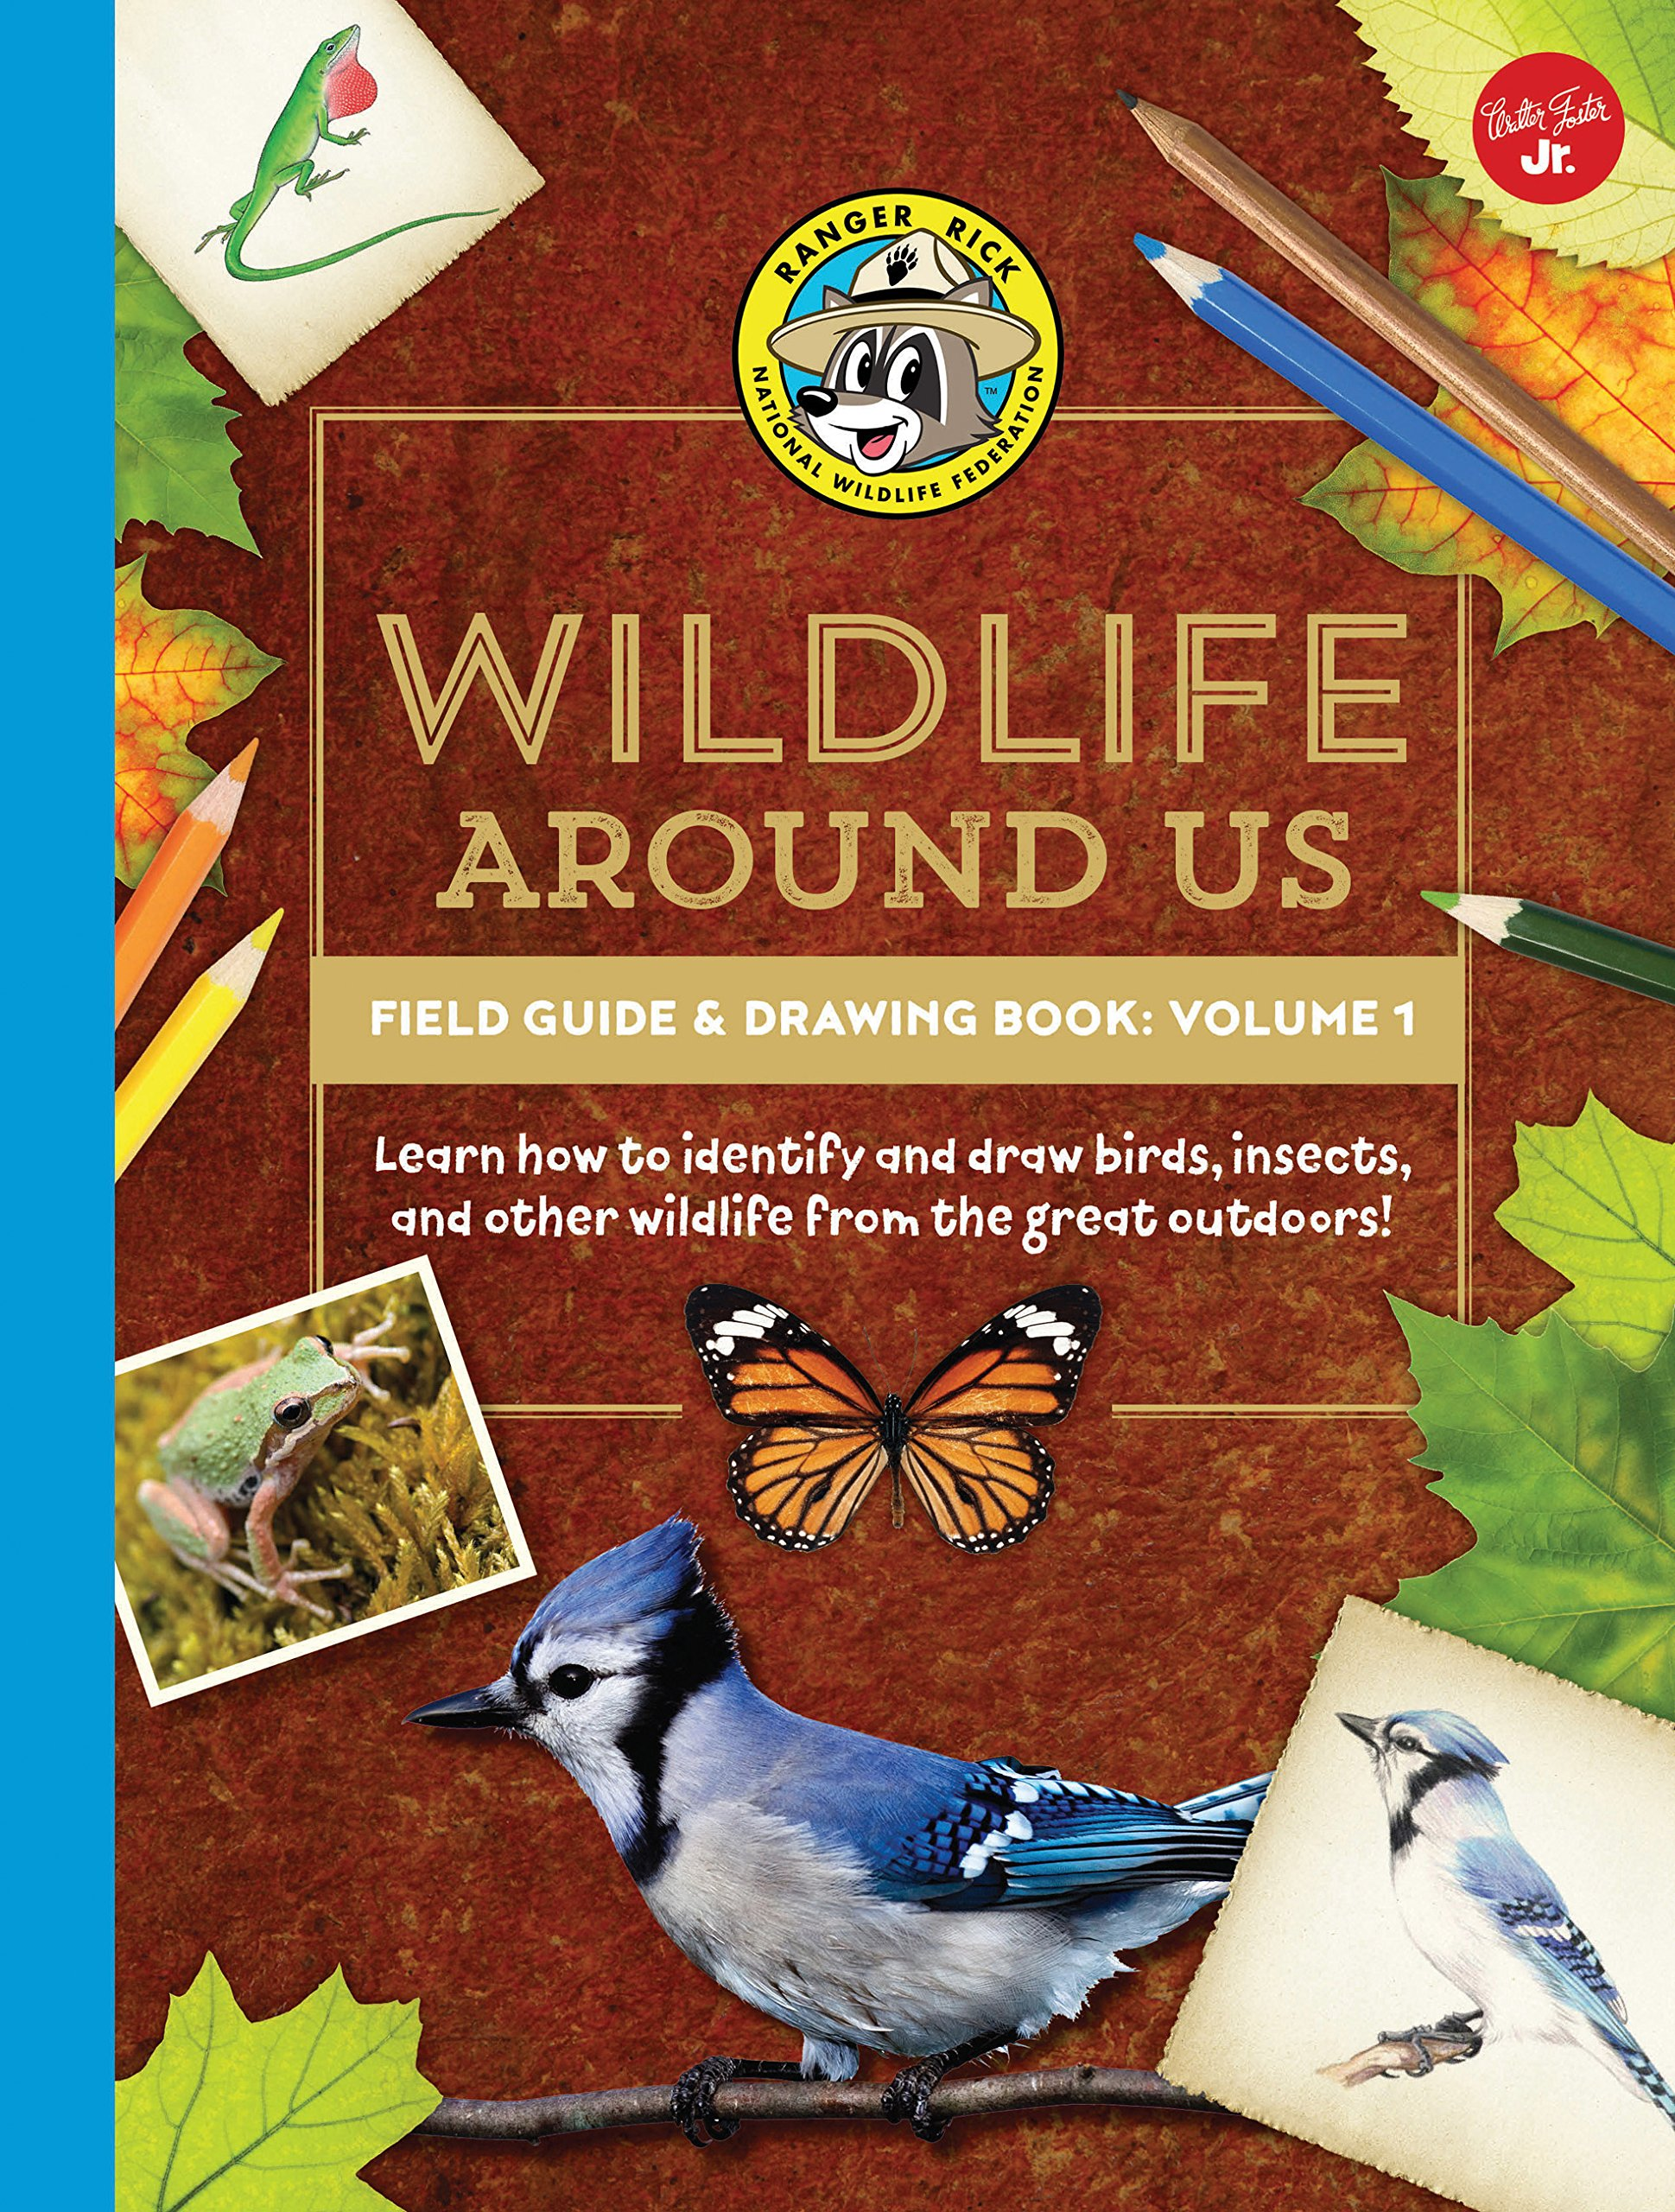 Download Ranger Rick's Wildlife Around Us Field Guide & Drawing Book: Volume 1: Learn how to identify and draw birds, insects, and other wildlife from the great outdoors! (Ranger Rick's Field Guides) pdf epub